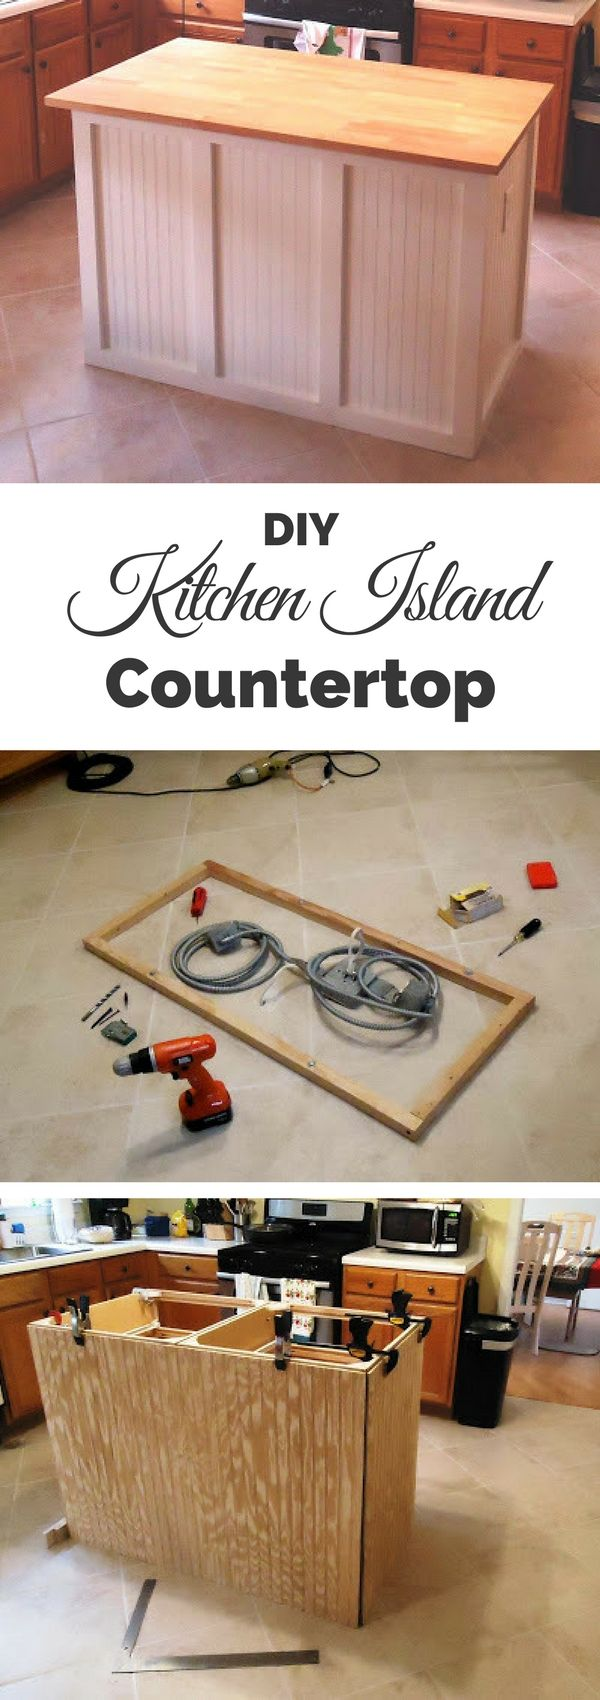 Check out the tutorial on how to build a DIY countertop kitchen island @istandarddesign